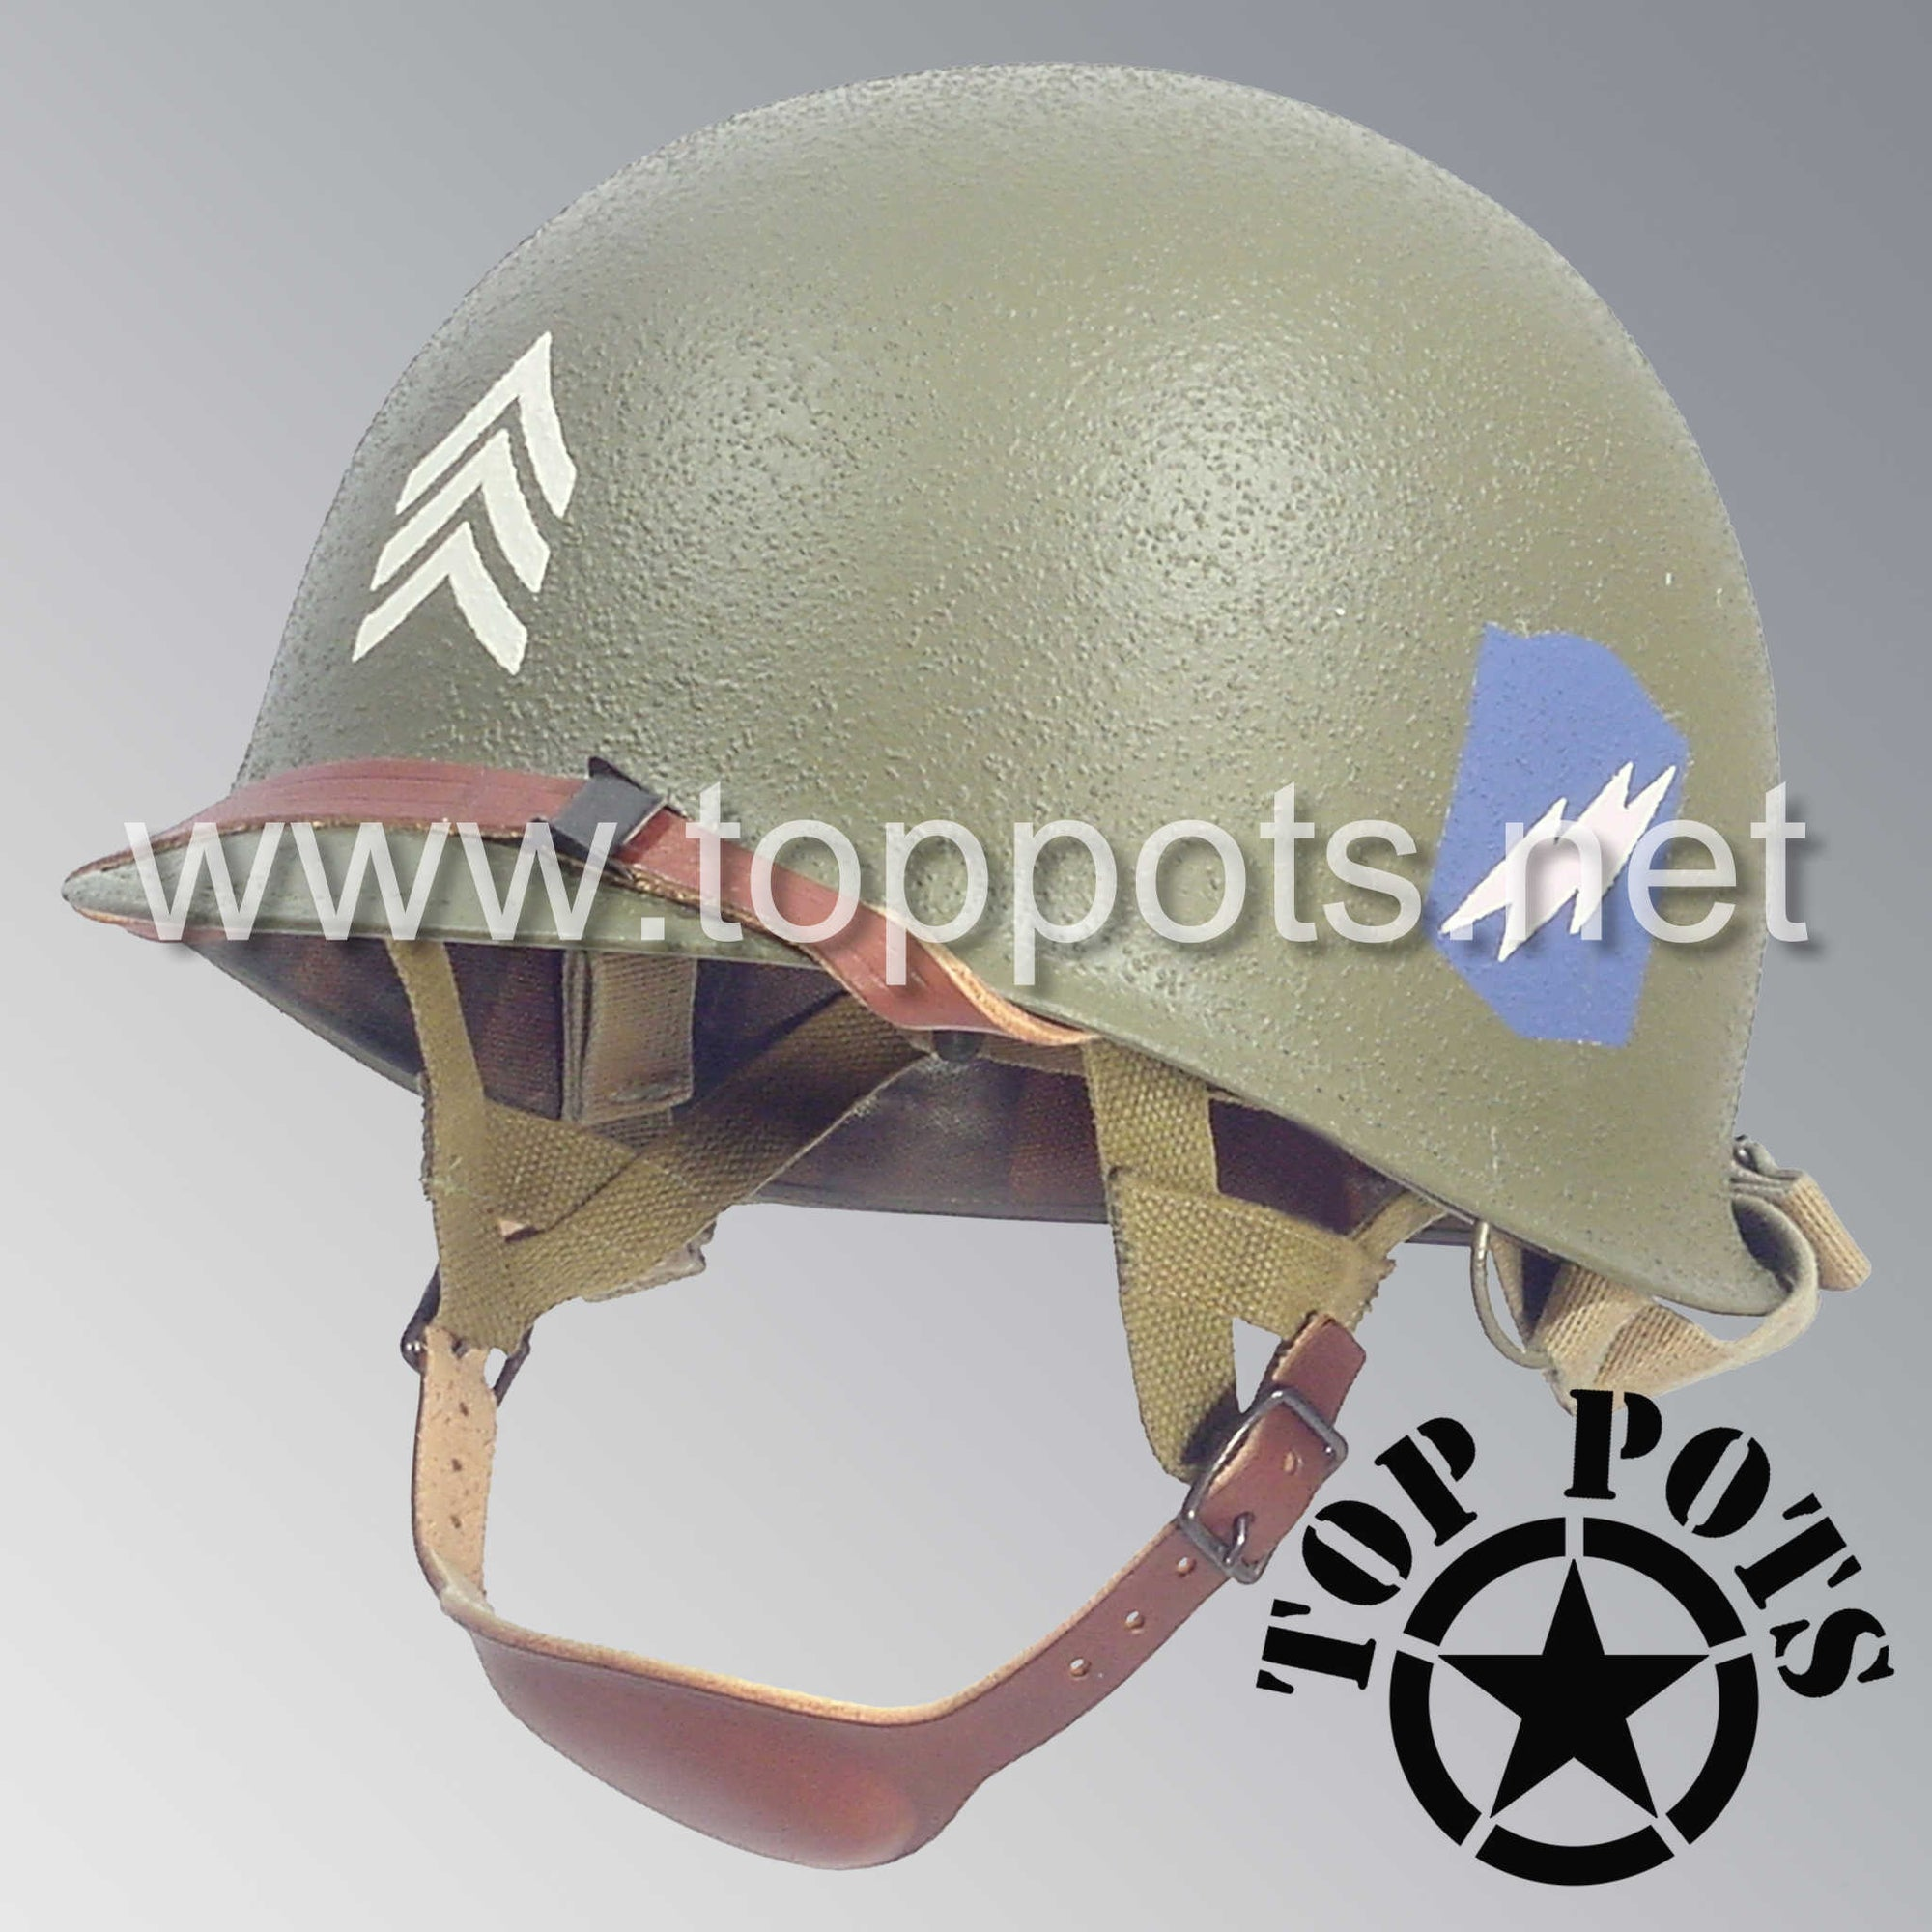 Image 1 of WWII US Army Restored Original M2 Paratrooper Airborne Helmet D Bale Shell and Liner with 507th PIR NCO Emblem